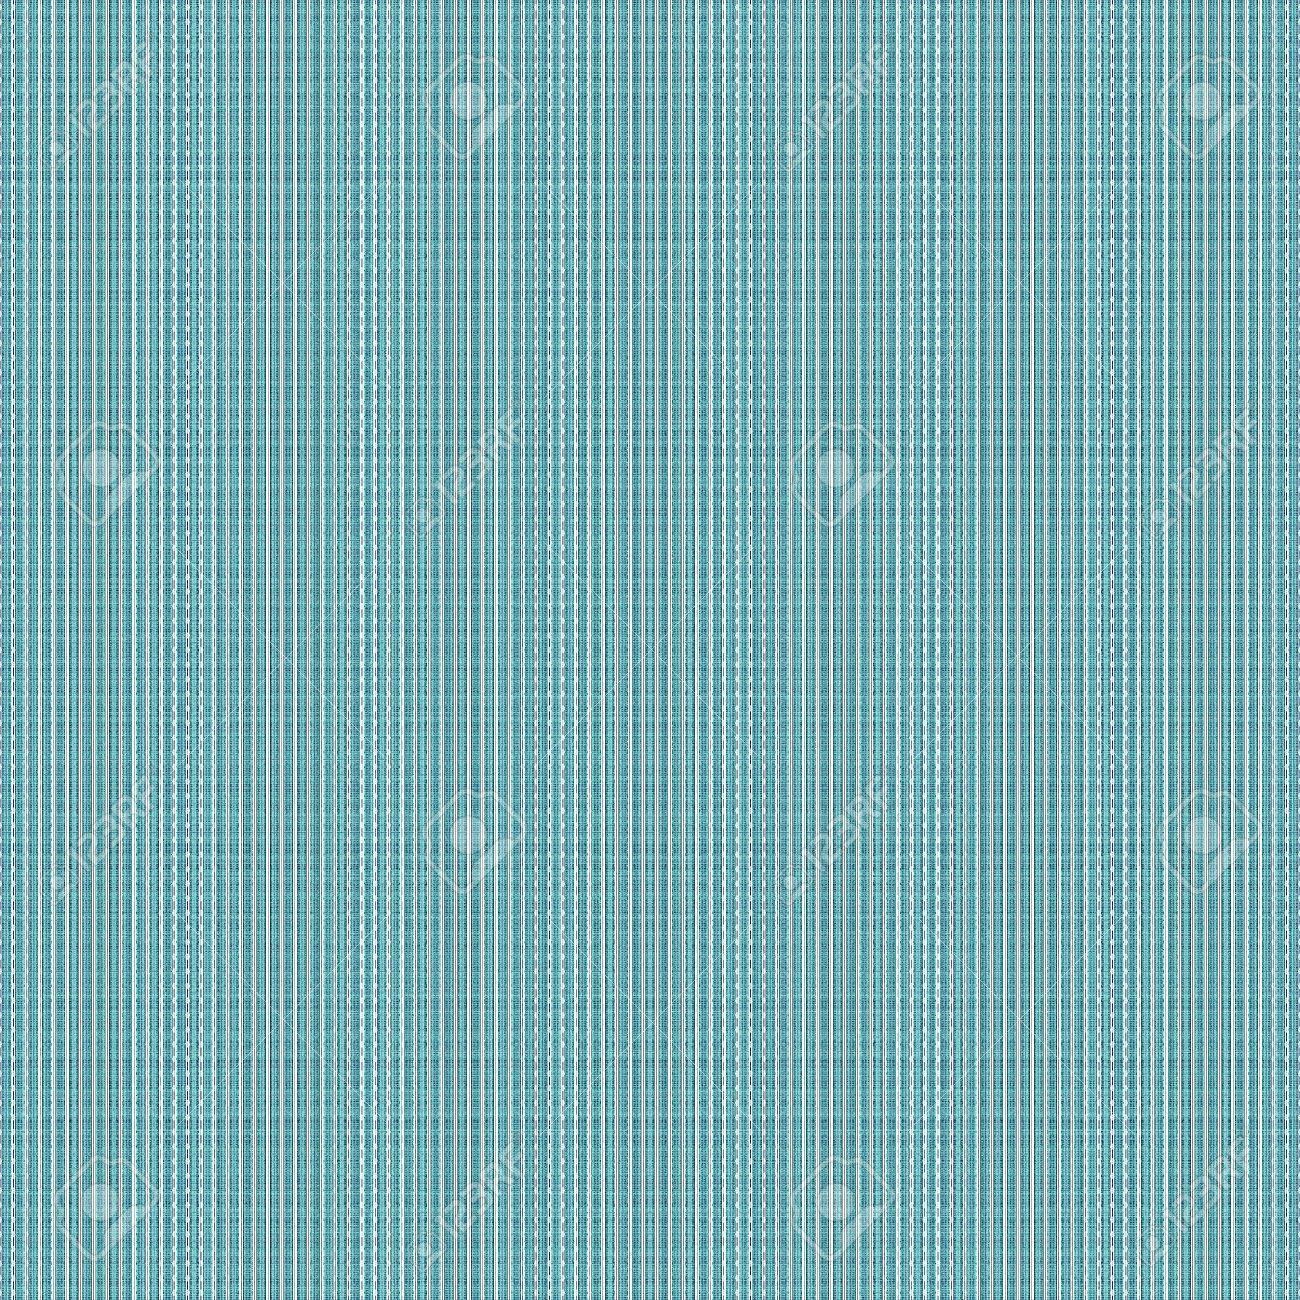 Seamless Blue Striped Wallpaper Stock Photo Picture And Royalty